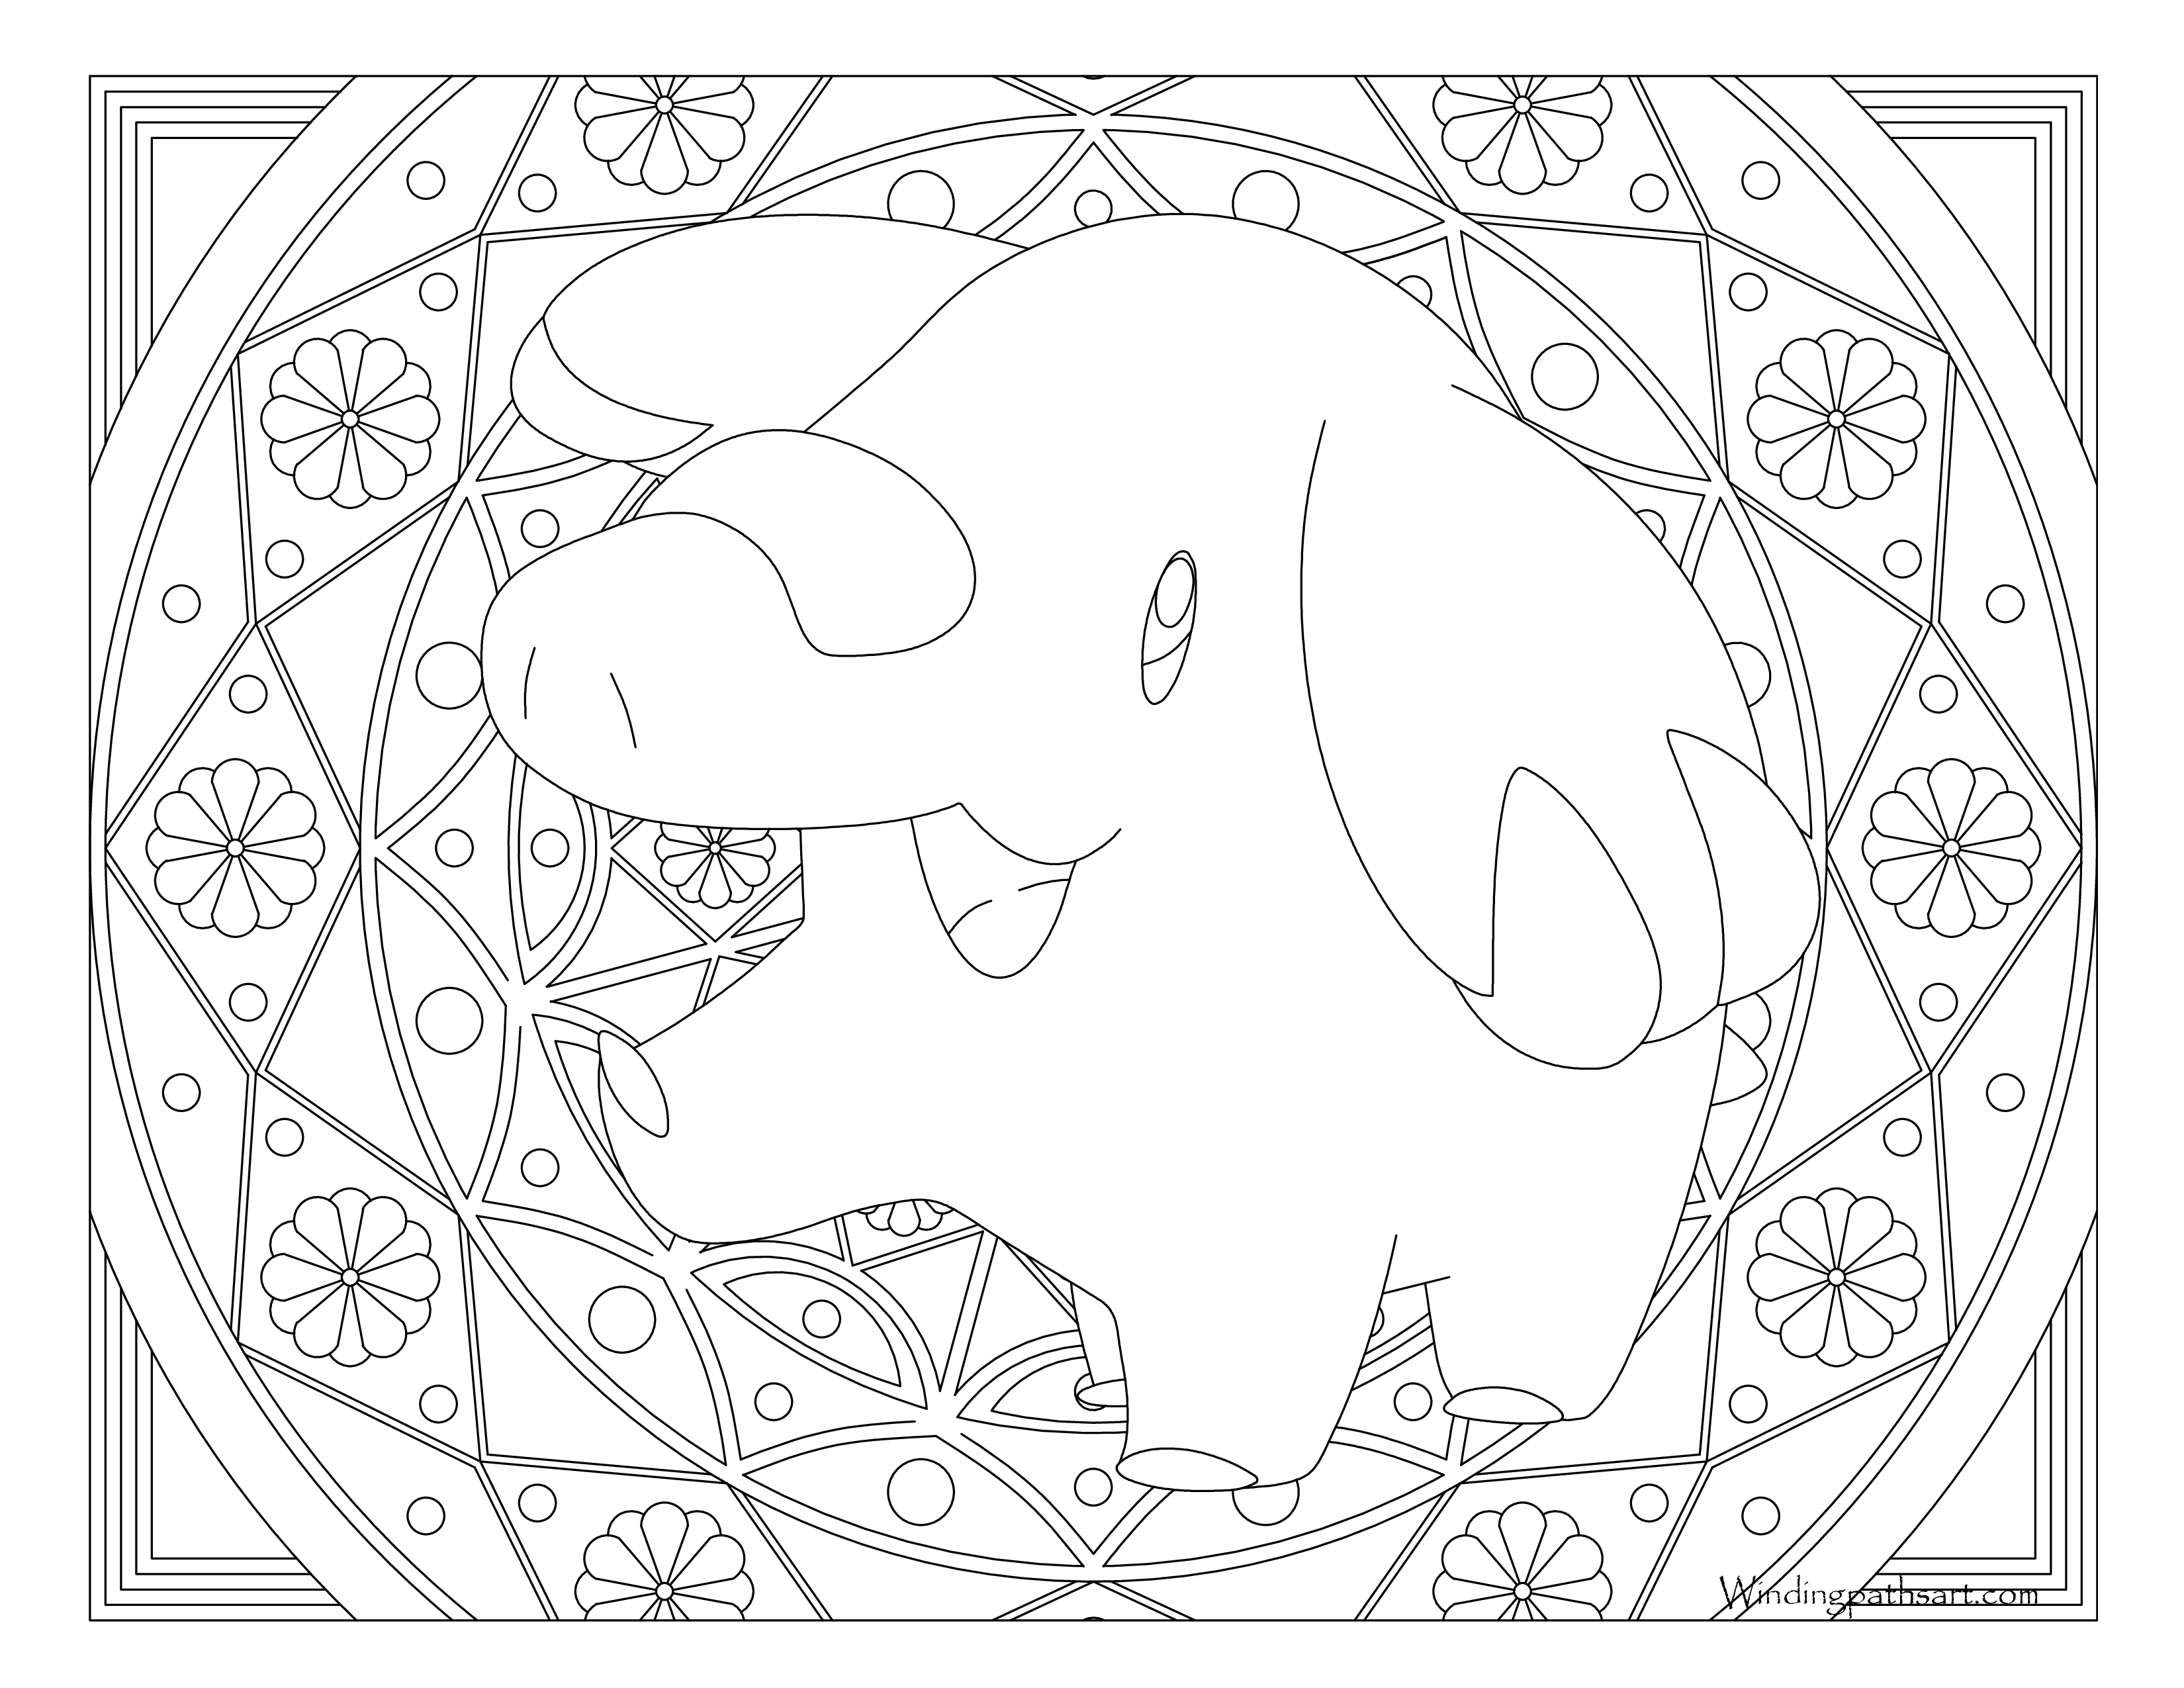 stantler pokemon coloring pages - photo#32